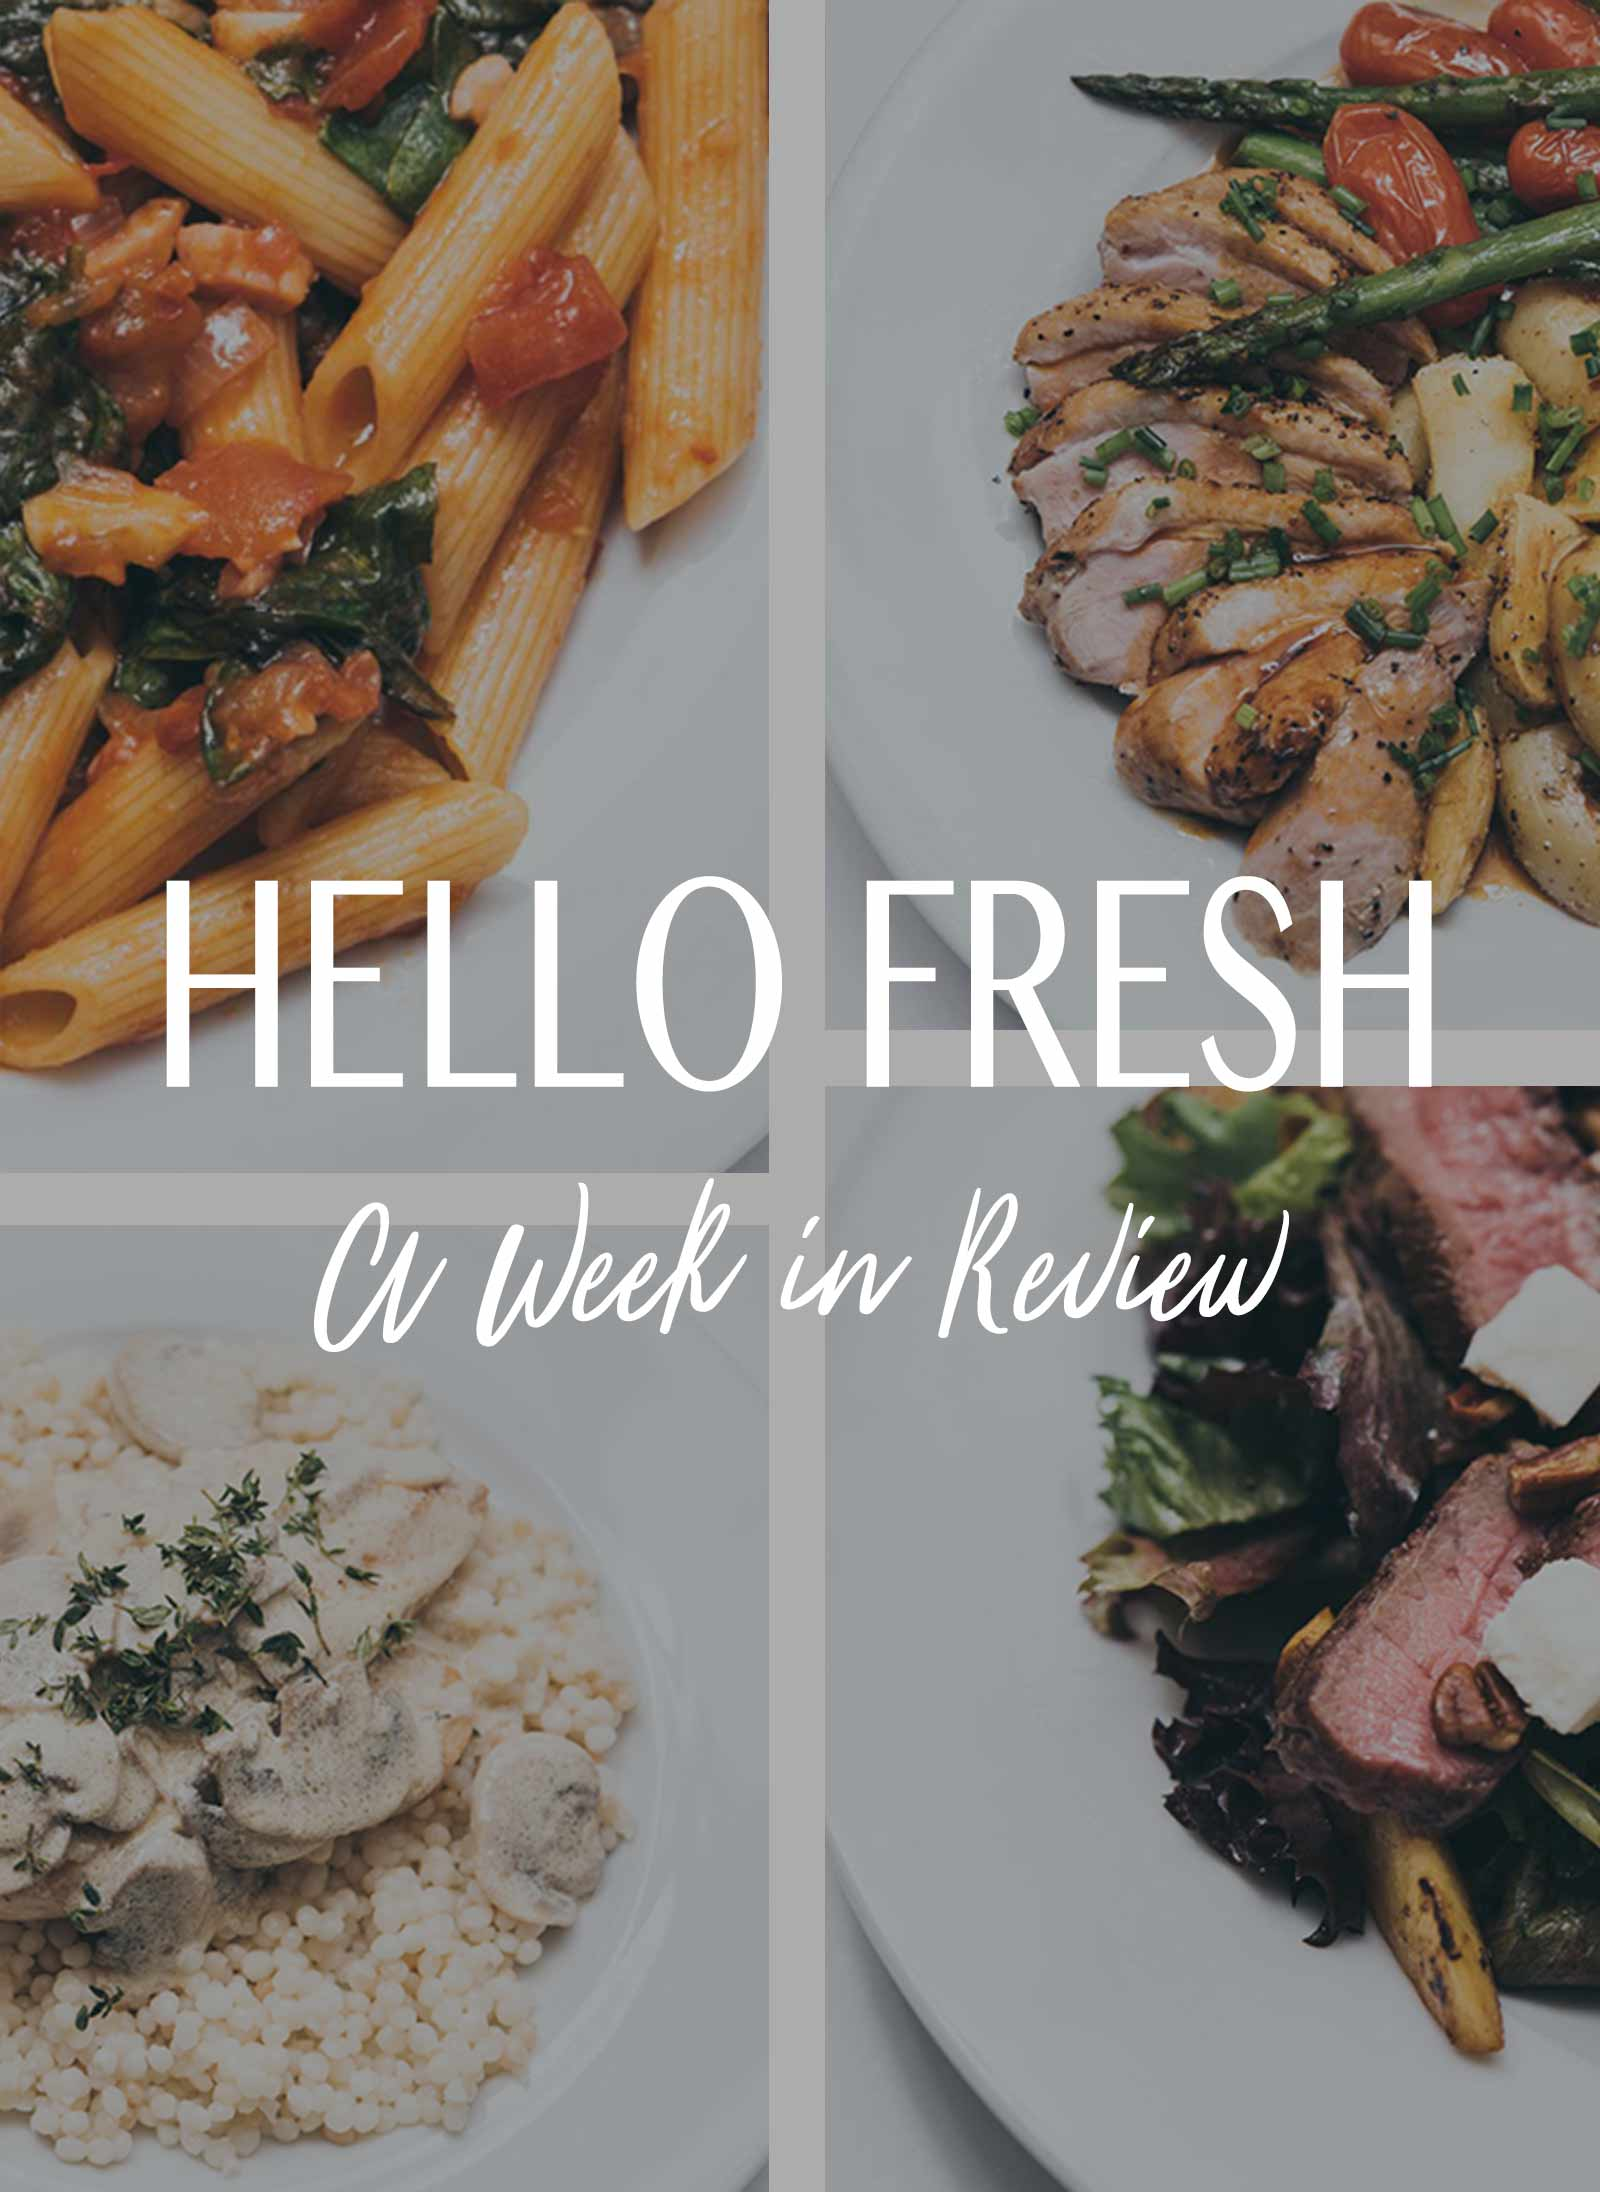 Voucher Code Printable 75 Hellofresh April